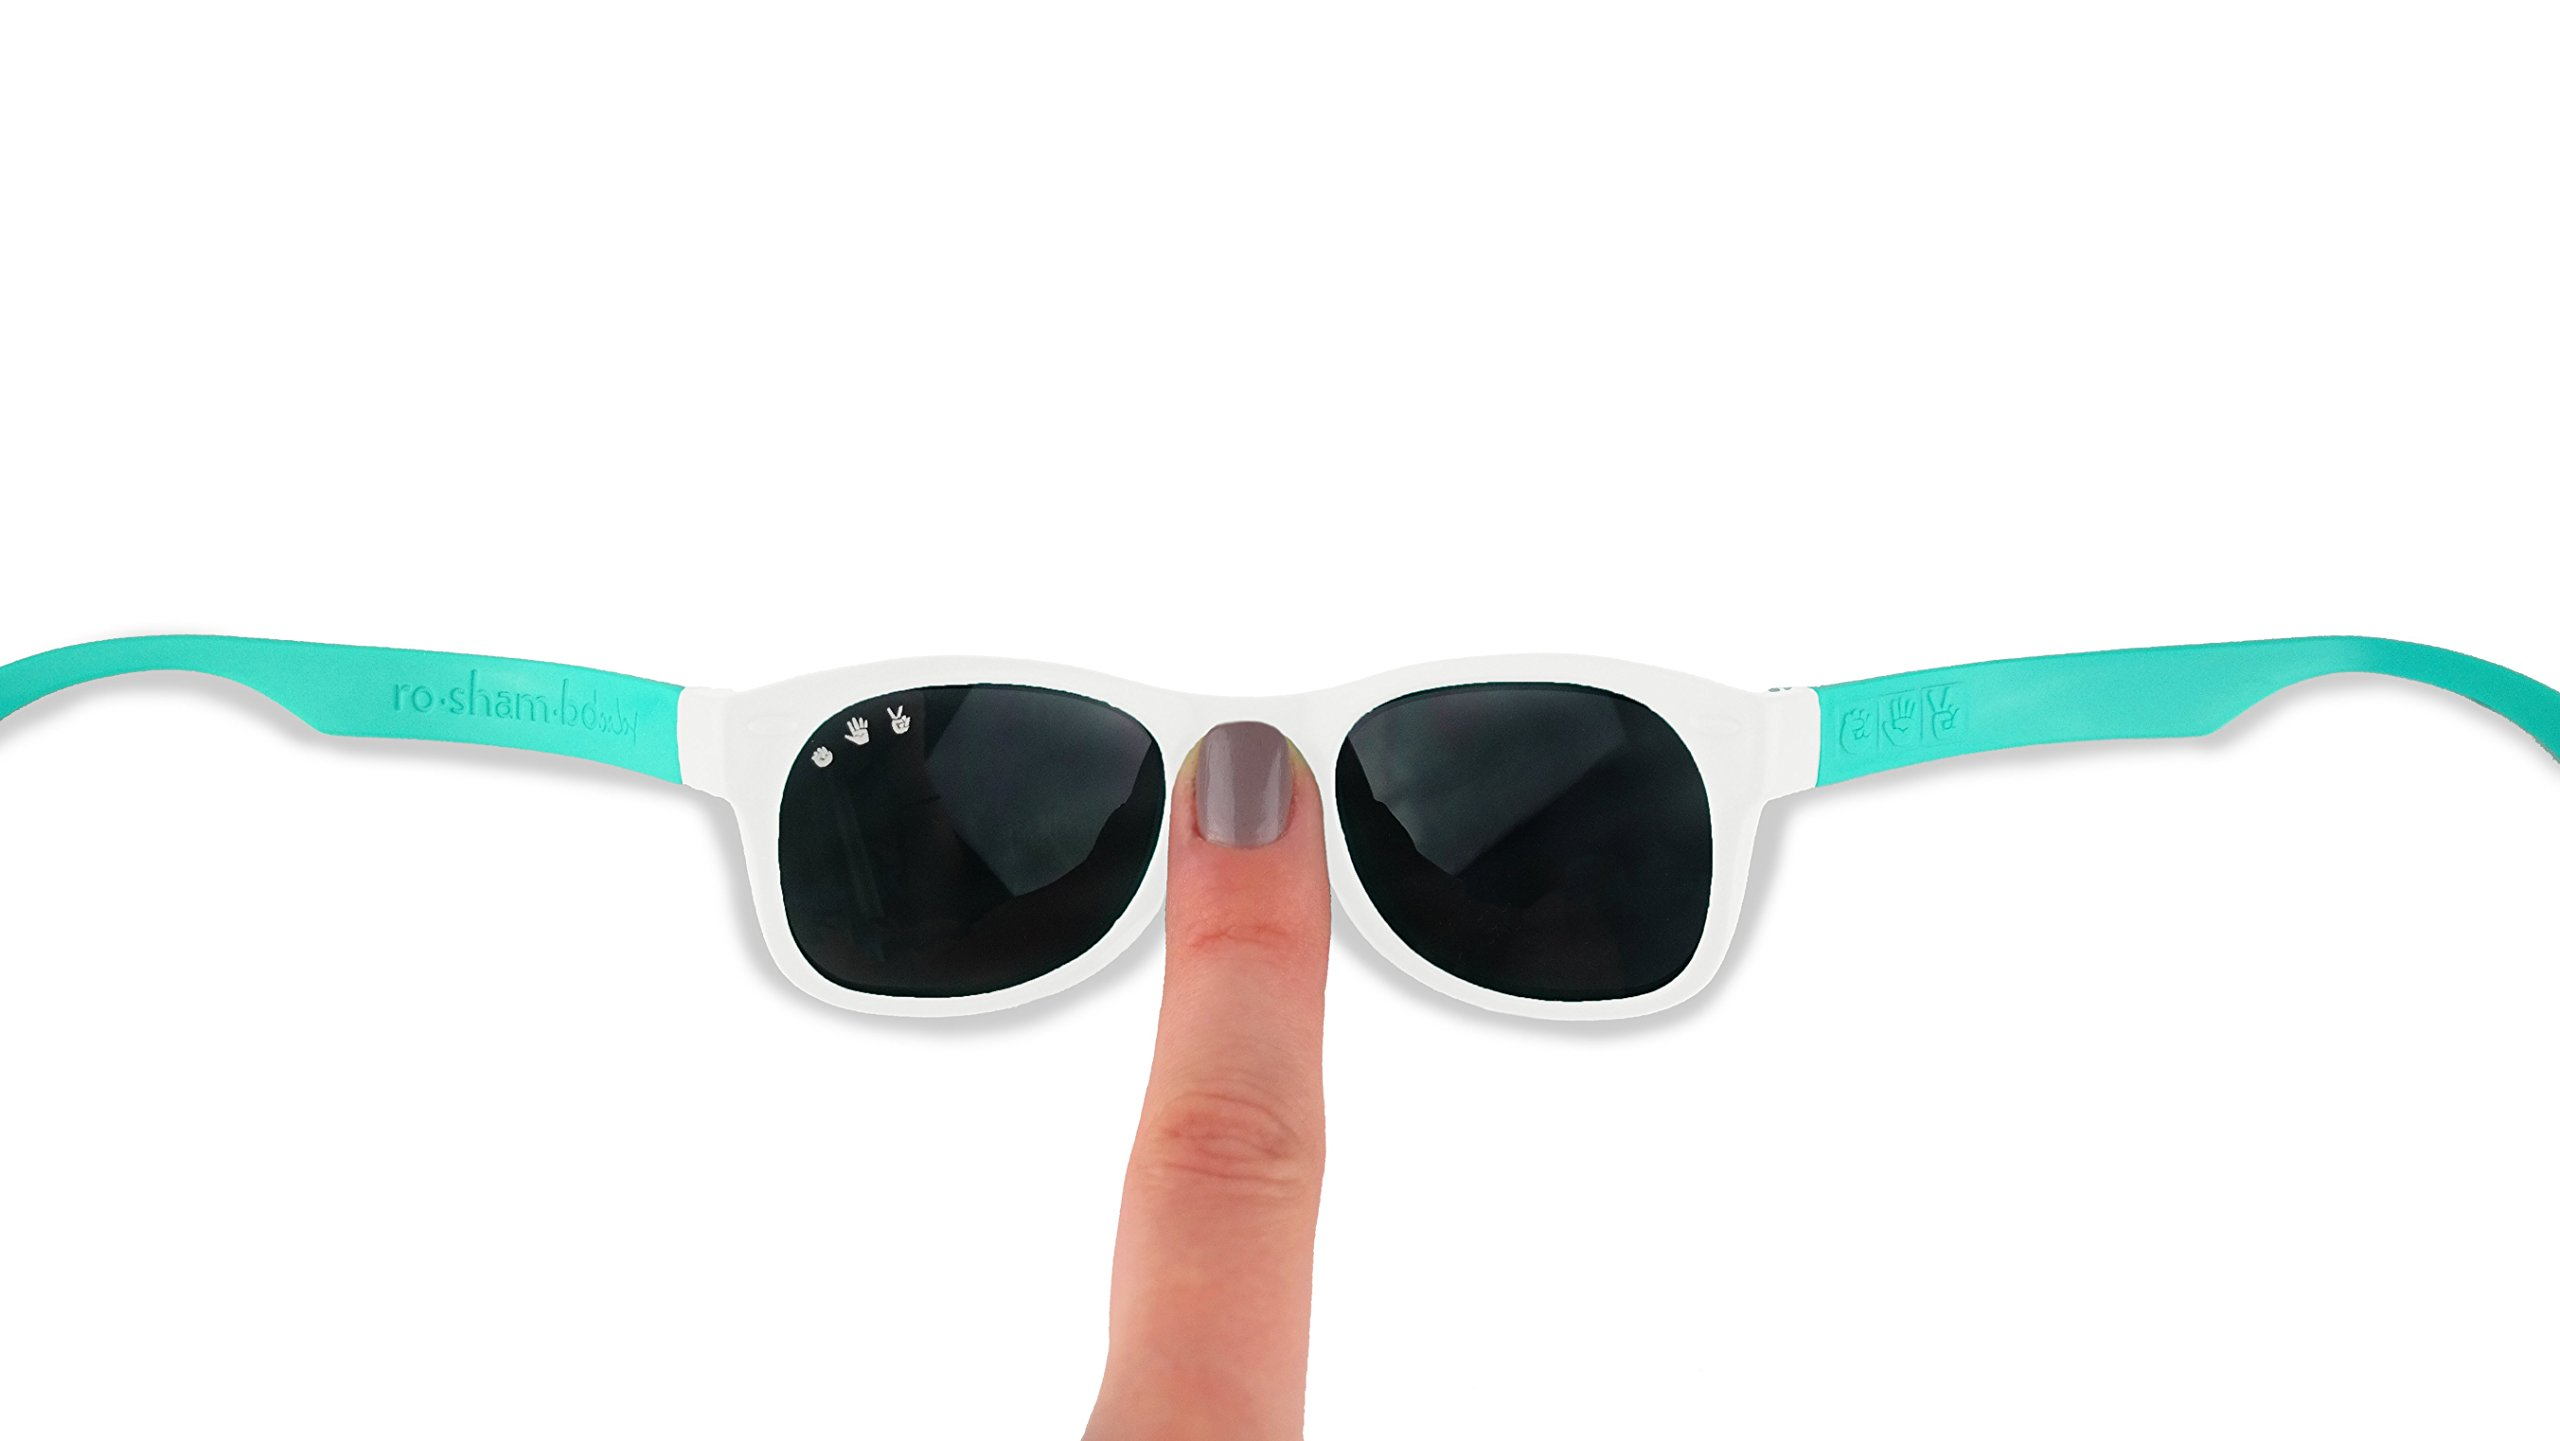 Roshambo Junior Shades, 90210 (Teal/White) by Roshambo Baby (Image #2)